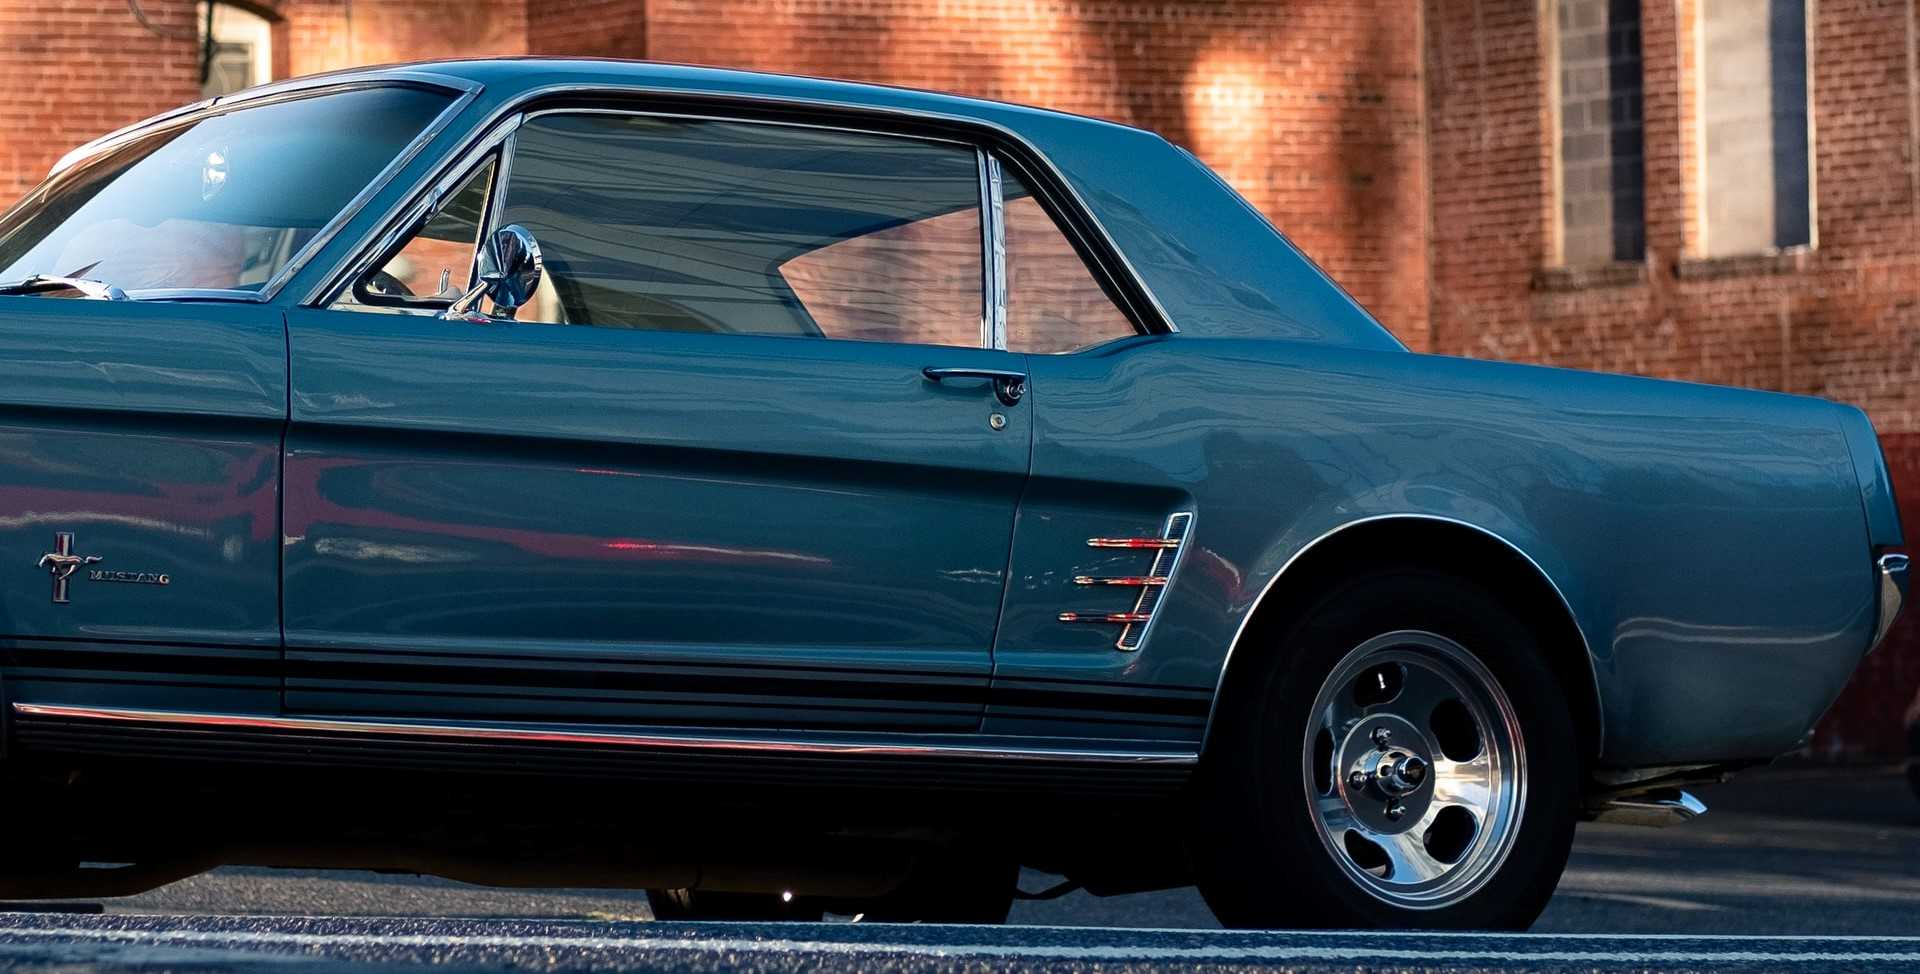 Blue Classic Car Parked on a Road   Kids Car Donations